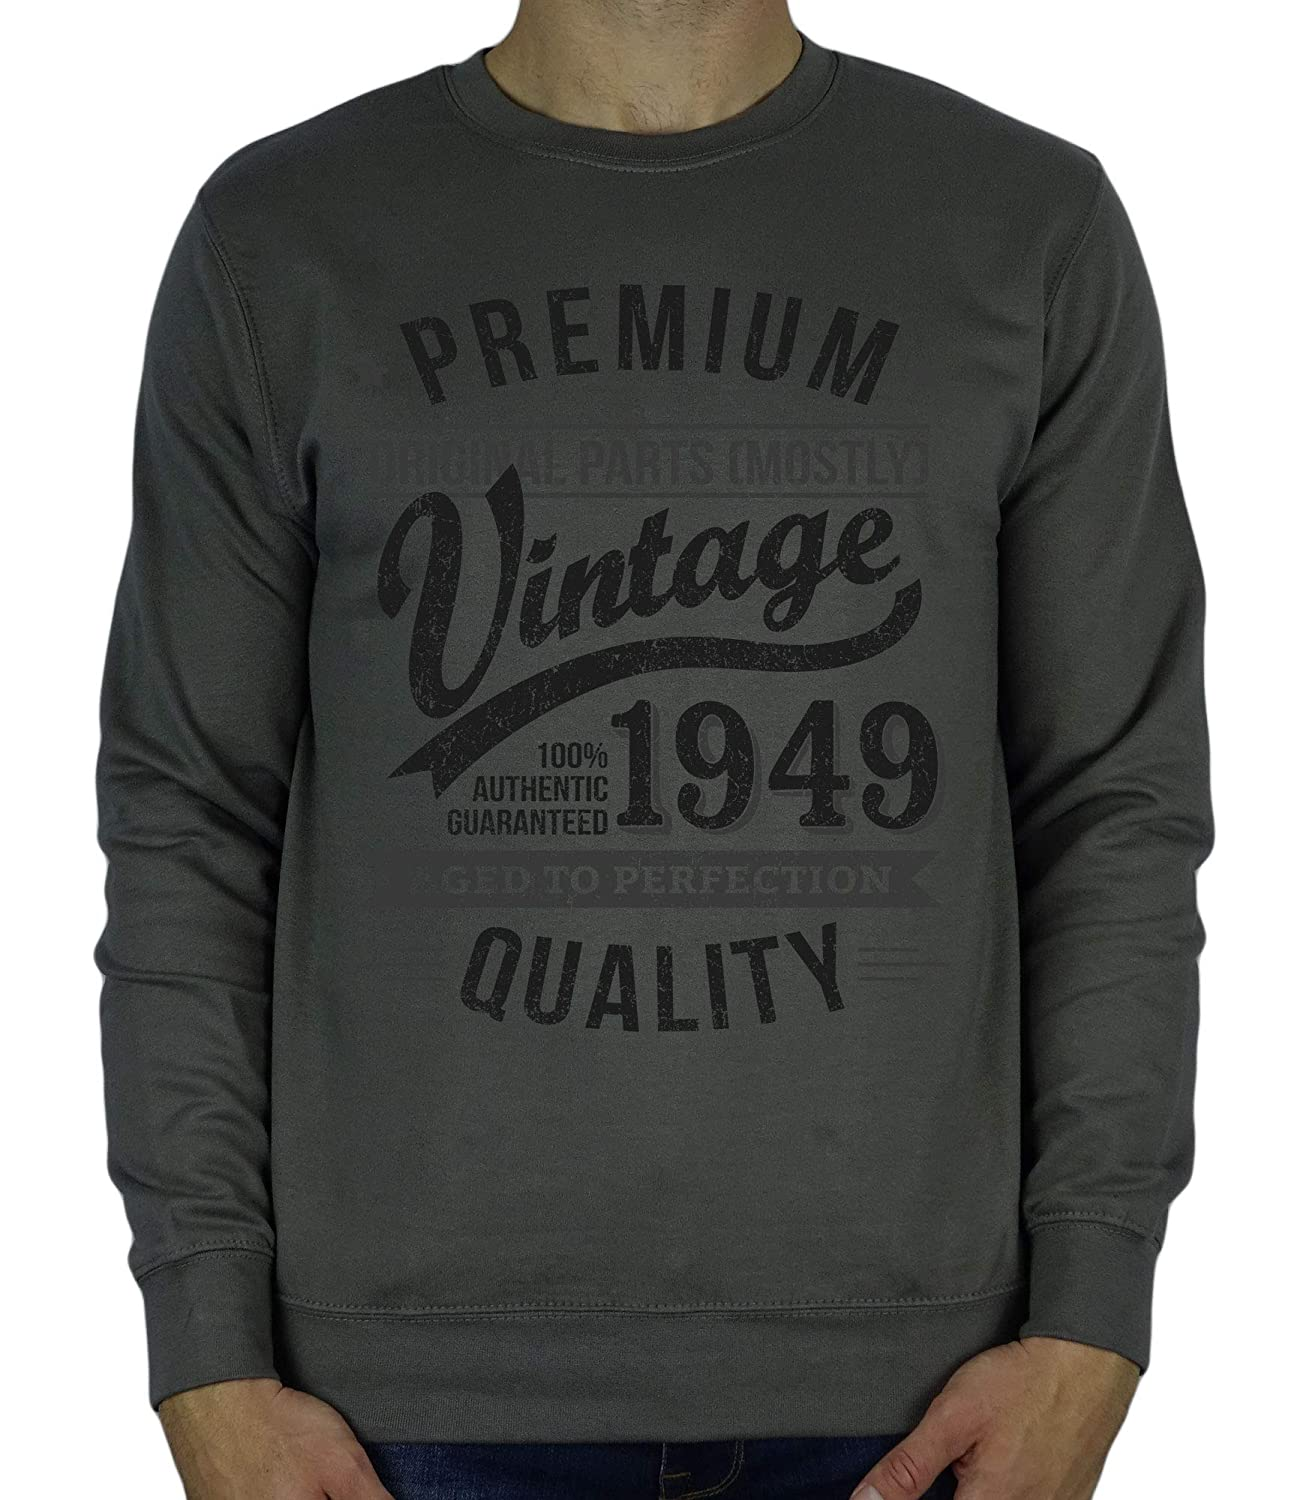 1949 Vintage Year Aged to Perfection Sweatshirt Cadeau Homme Anniversaire 70 Ans